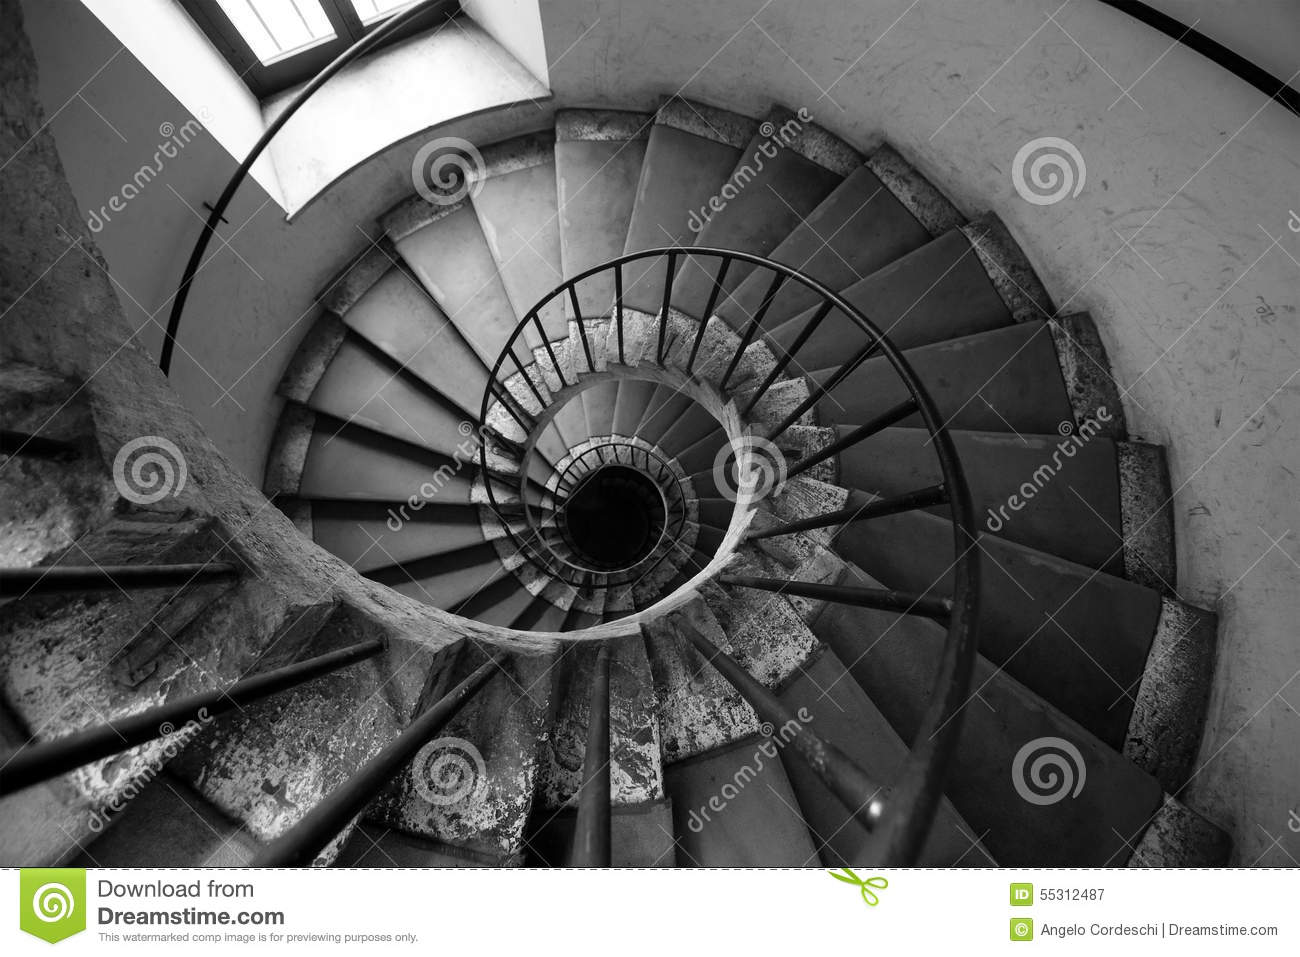 Download Spiral Stairs, Black And White. Architecture Old Italian Palace. Stock Image - Image of deep, dark: 55312487